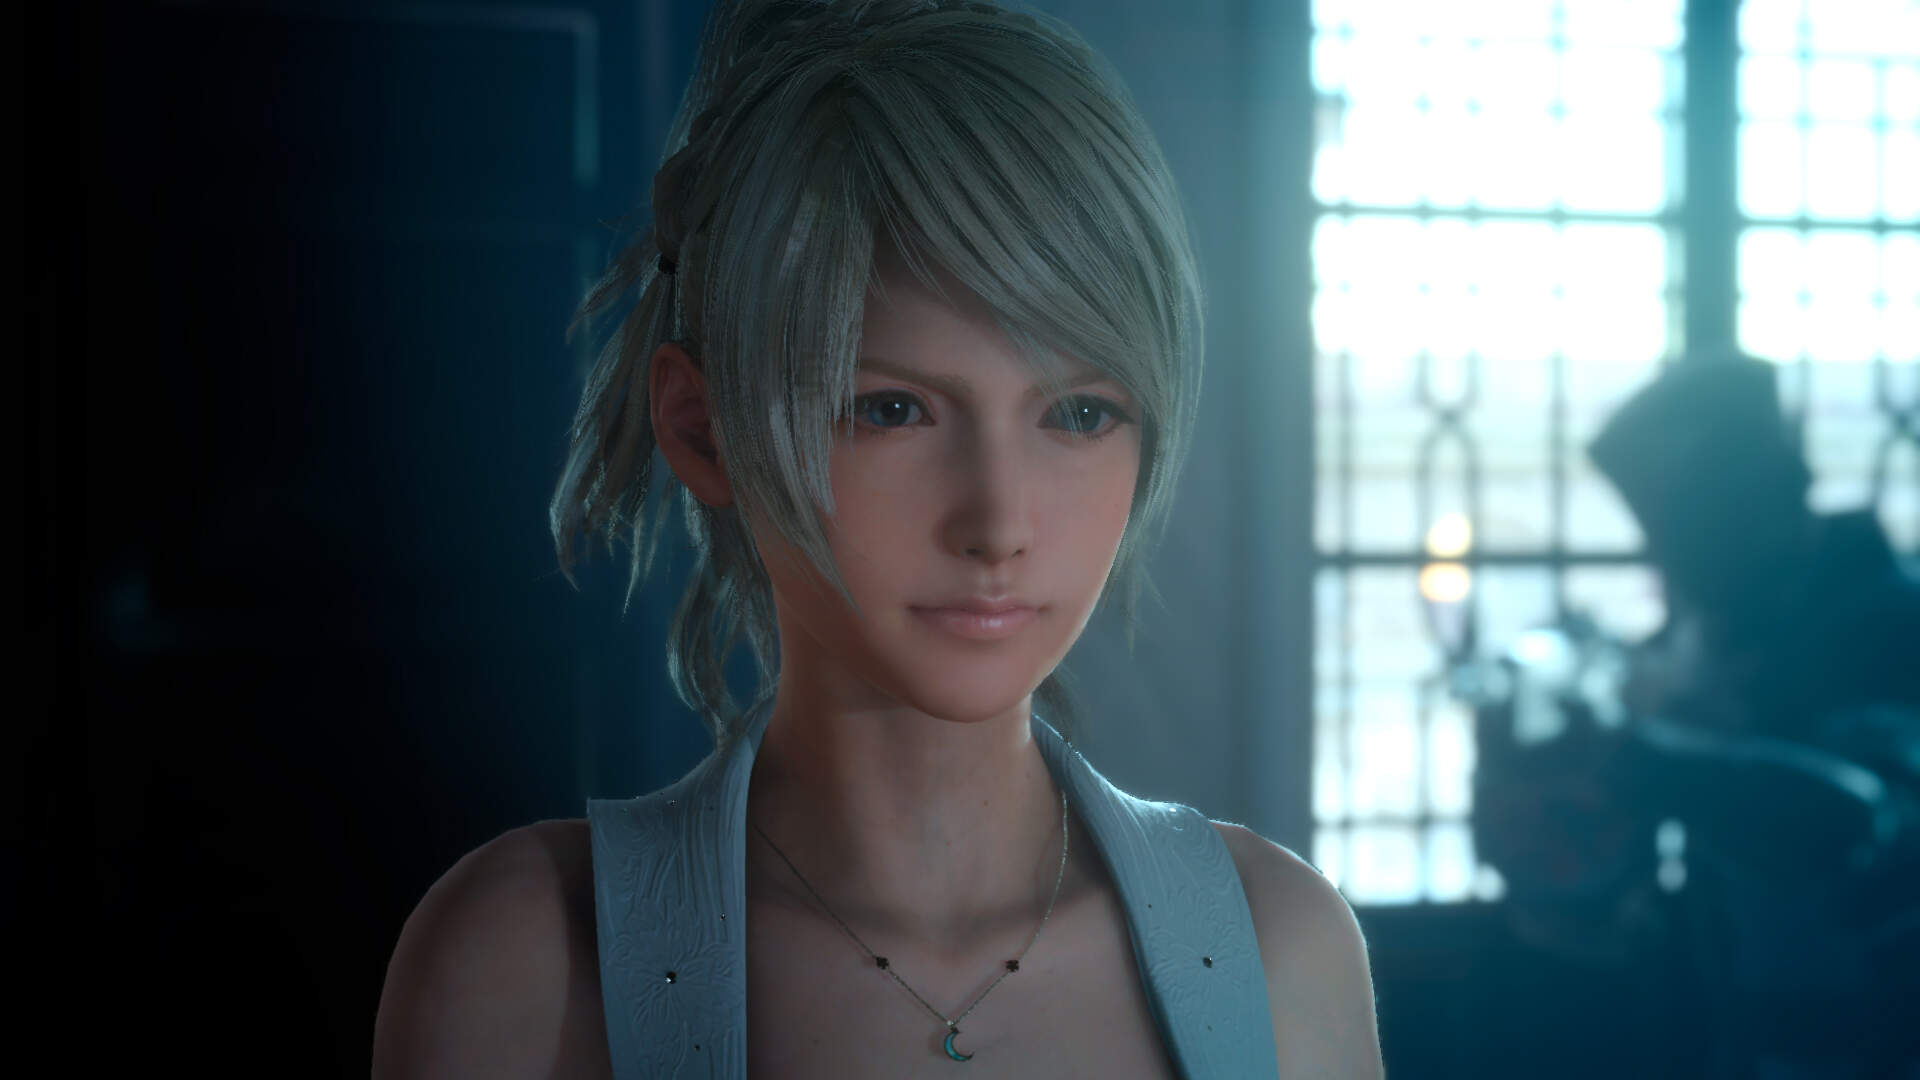 Final Fantasy 15 Novel Reveals the Plot, Concept Art for Canceled DLC